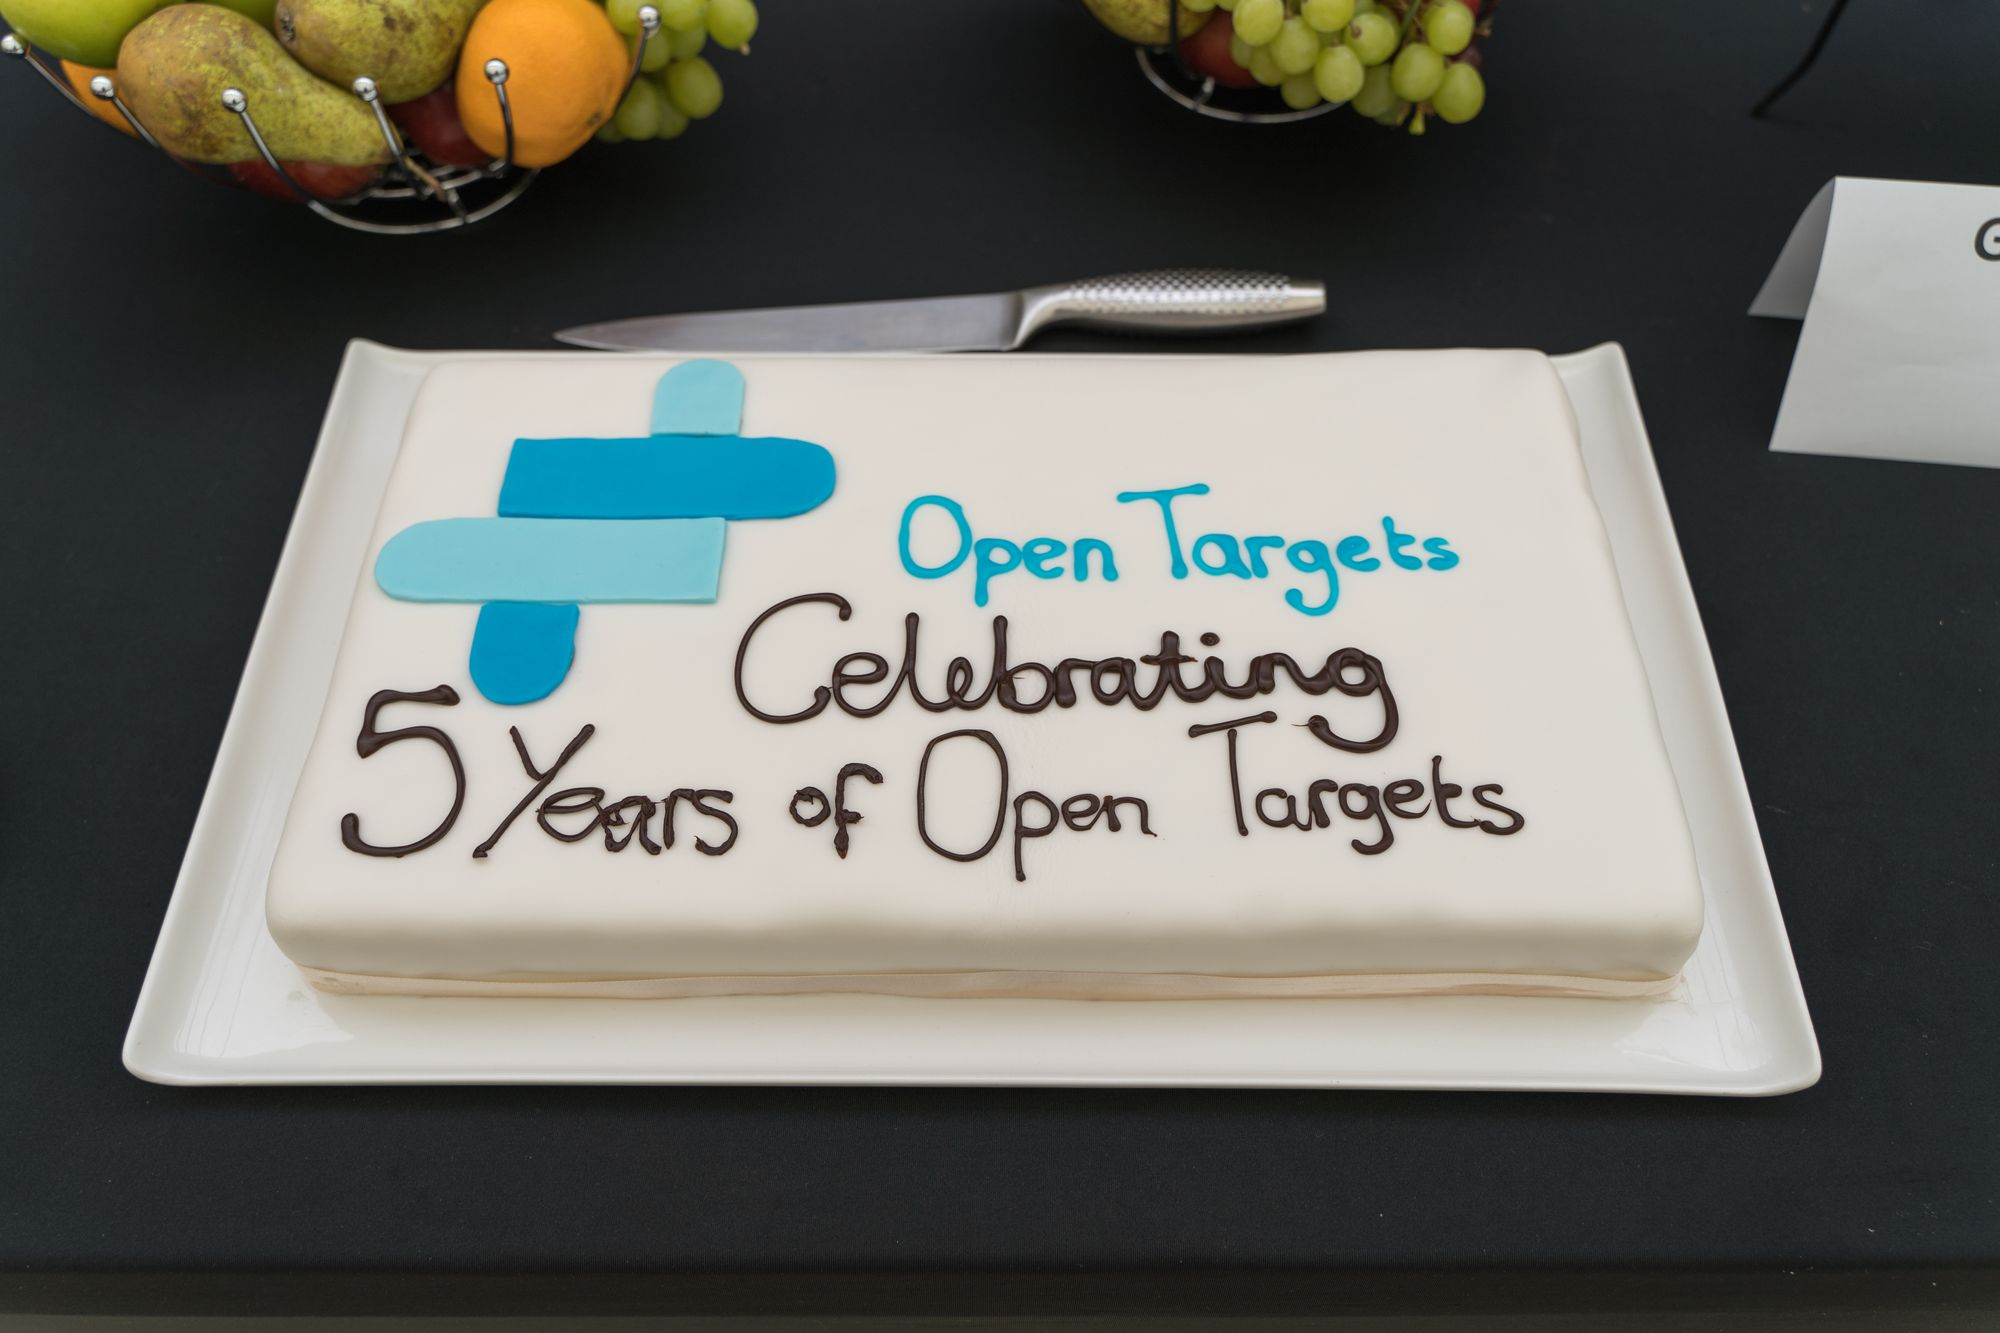 """White rectangular cake with blue and brown icing which reads: """"Open Targets Celebrating 5 years of Open Targets"""""""